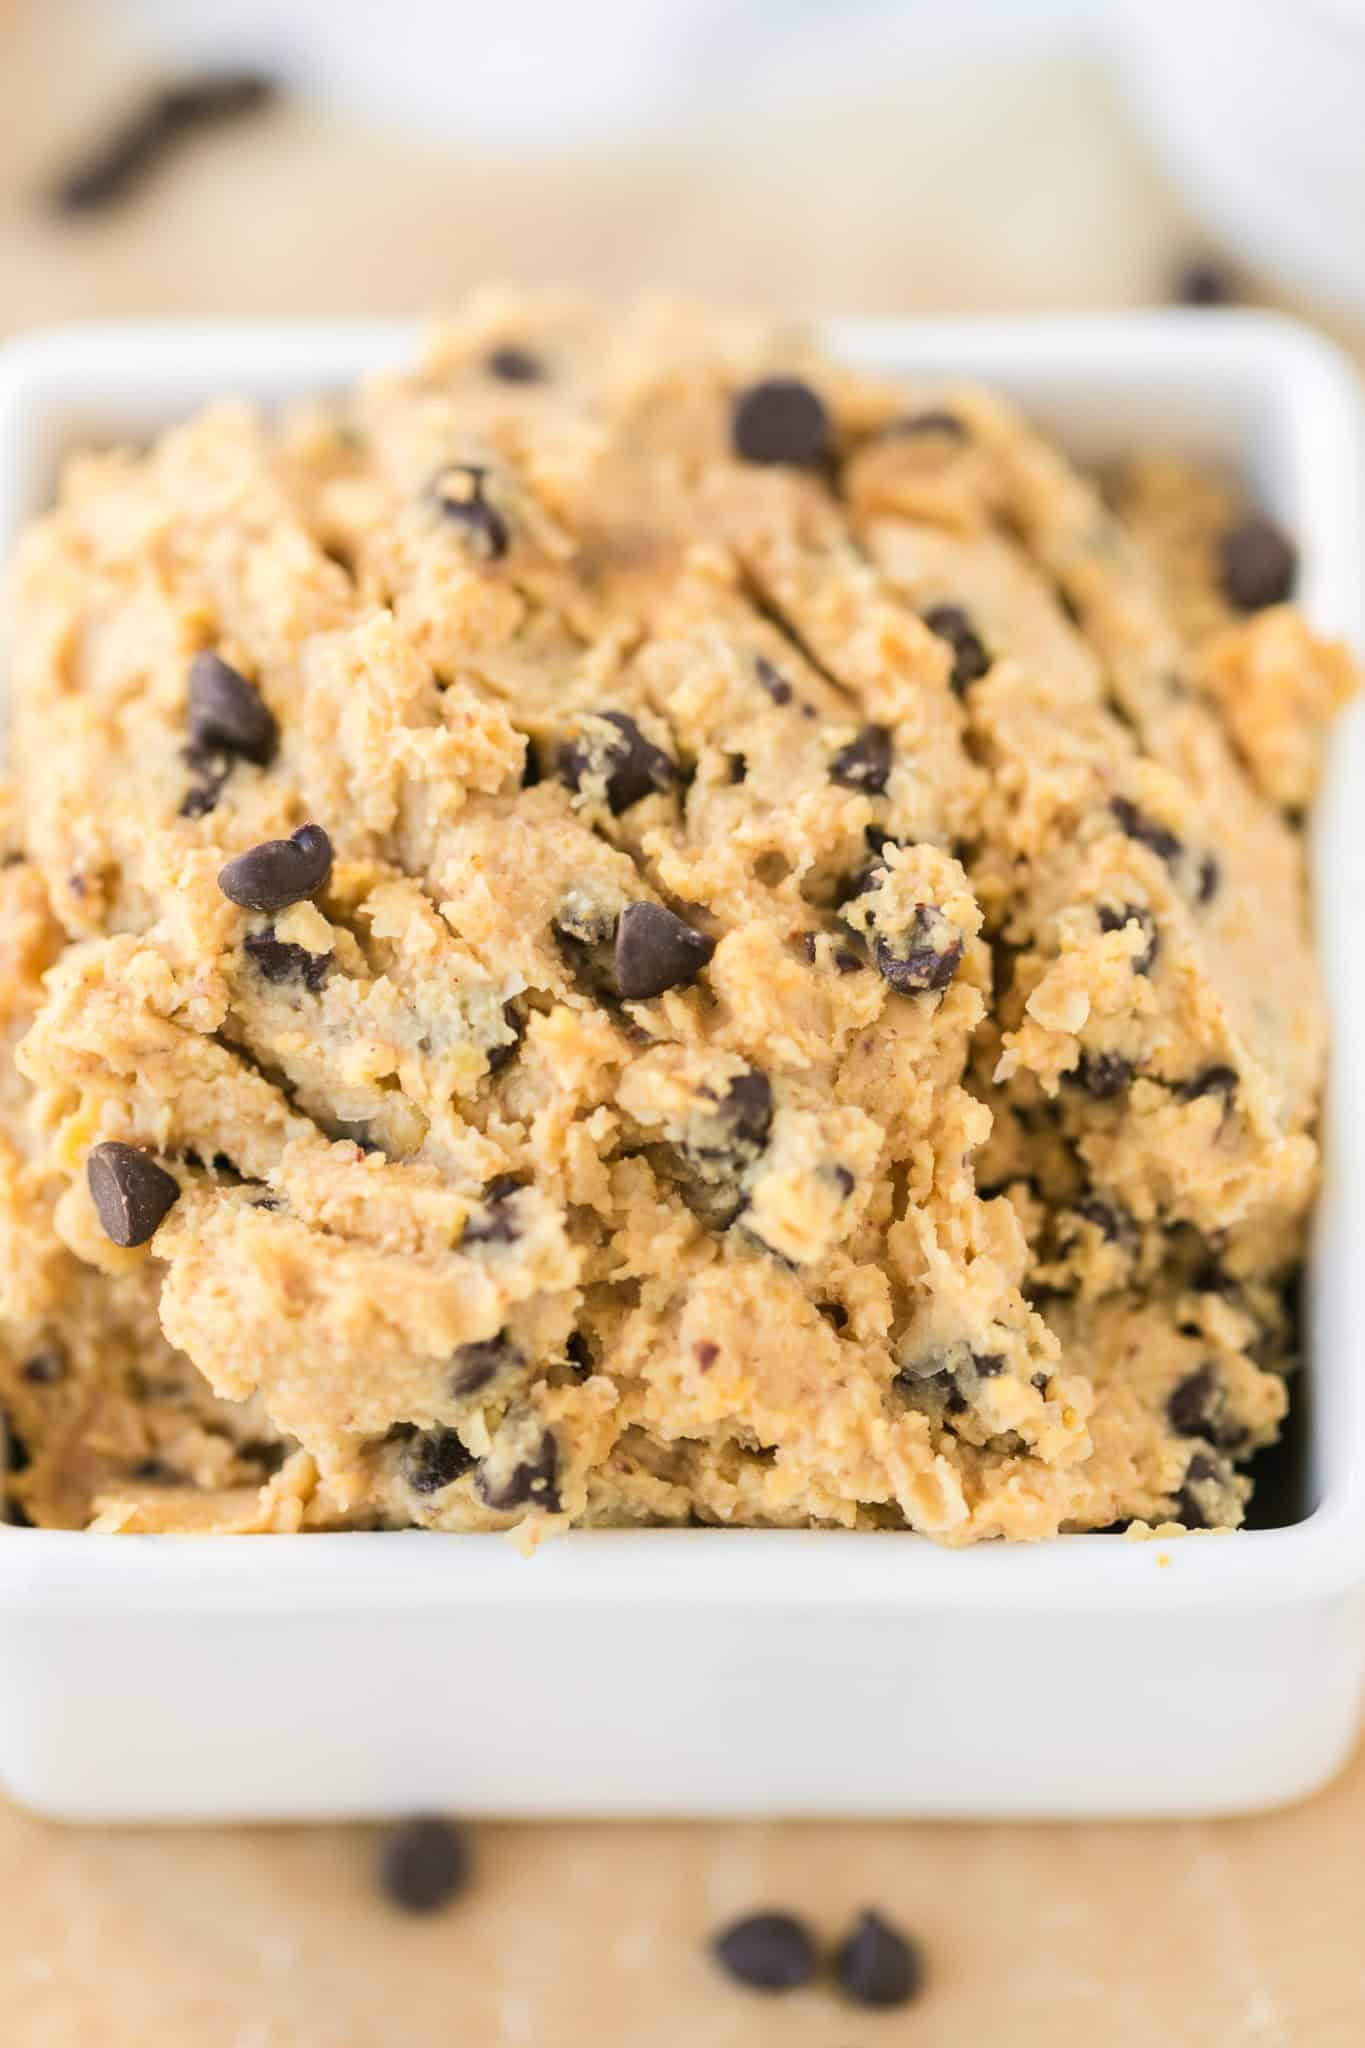 chocolate chip edible cookie dough made with chickpeas